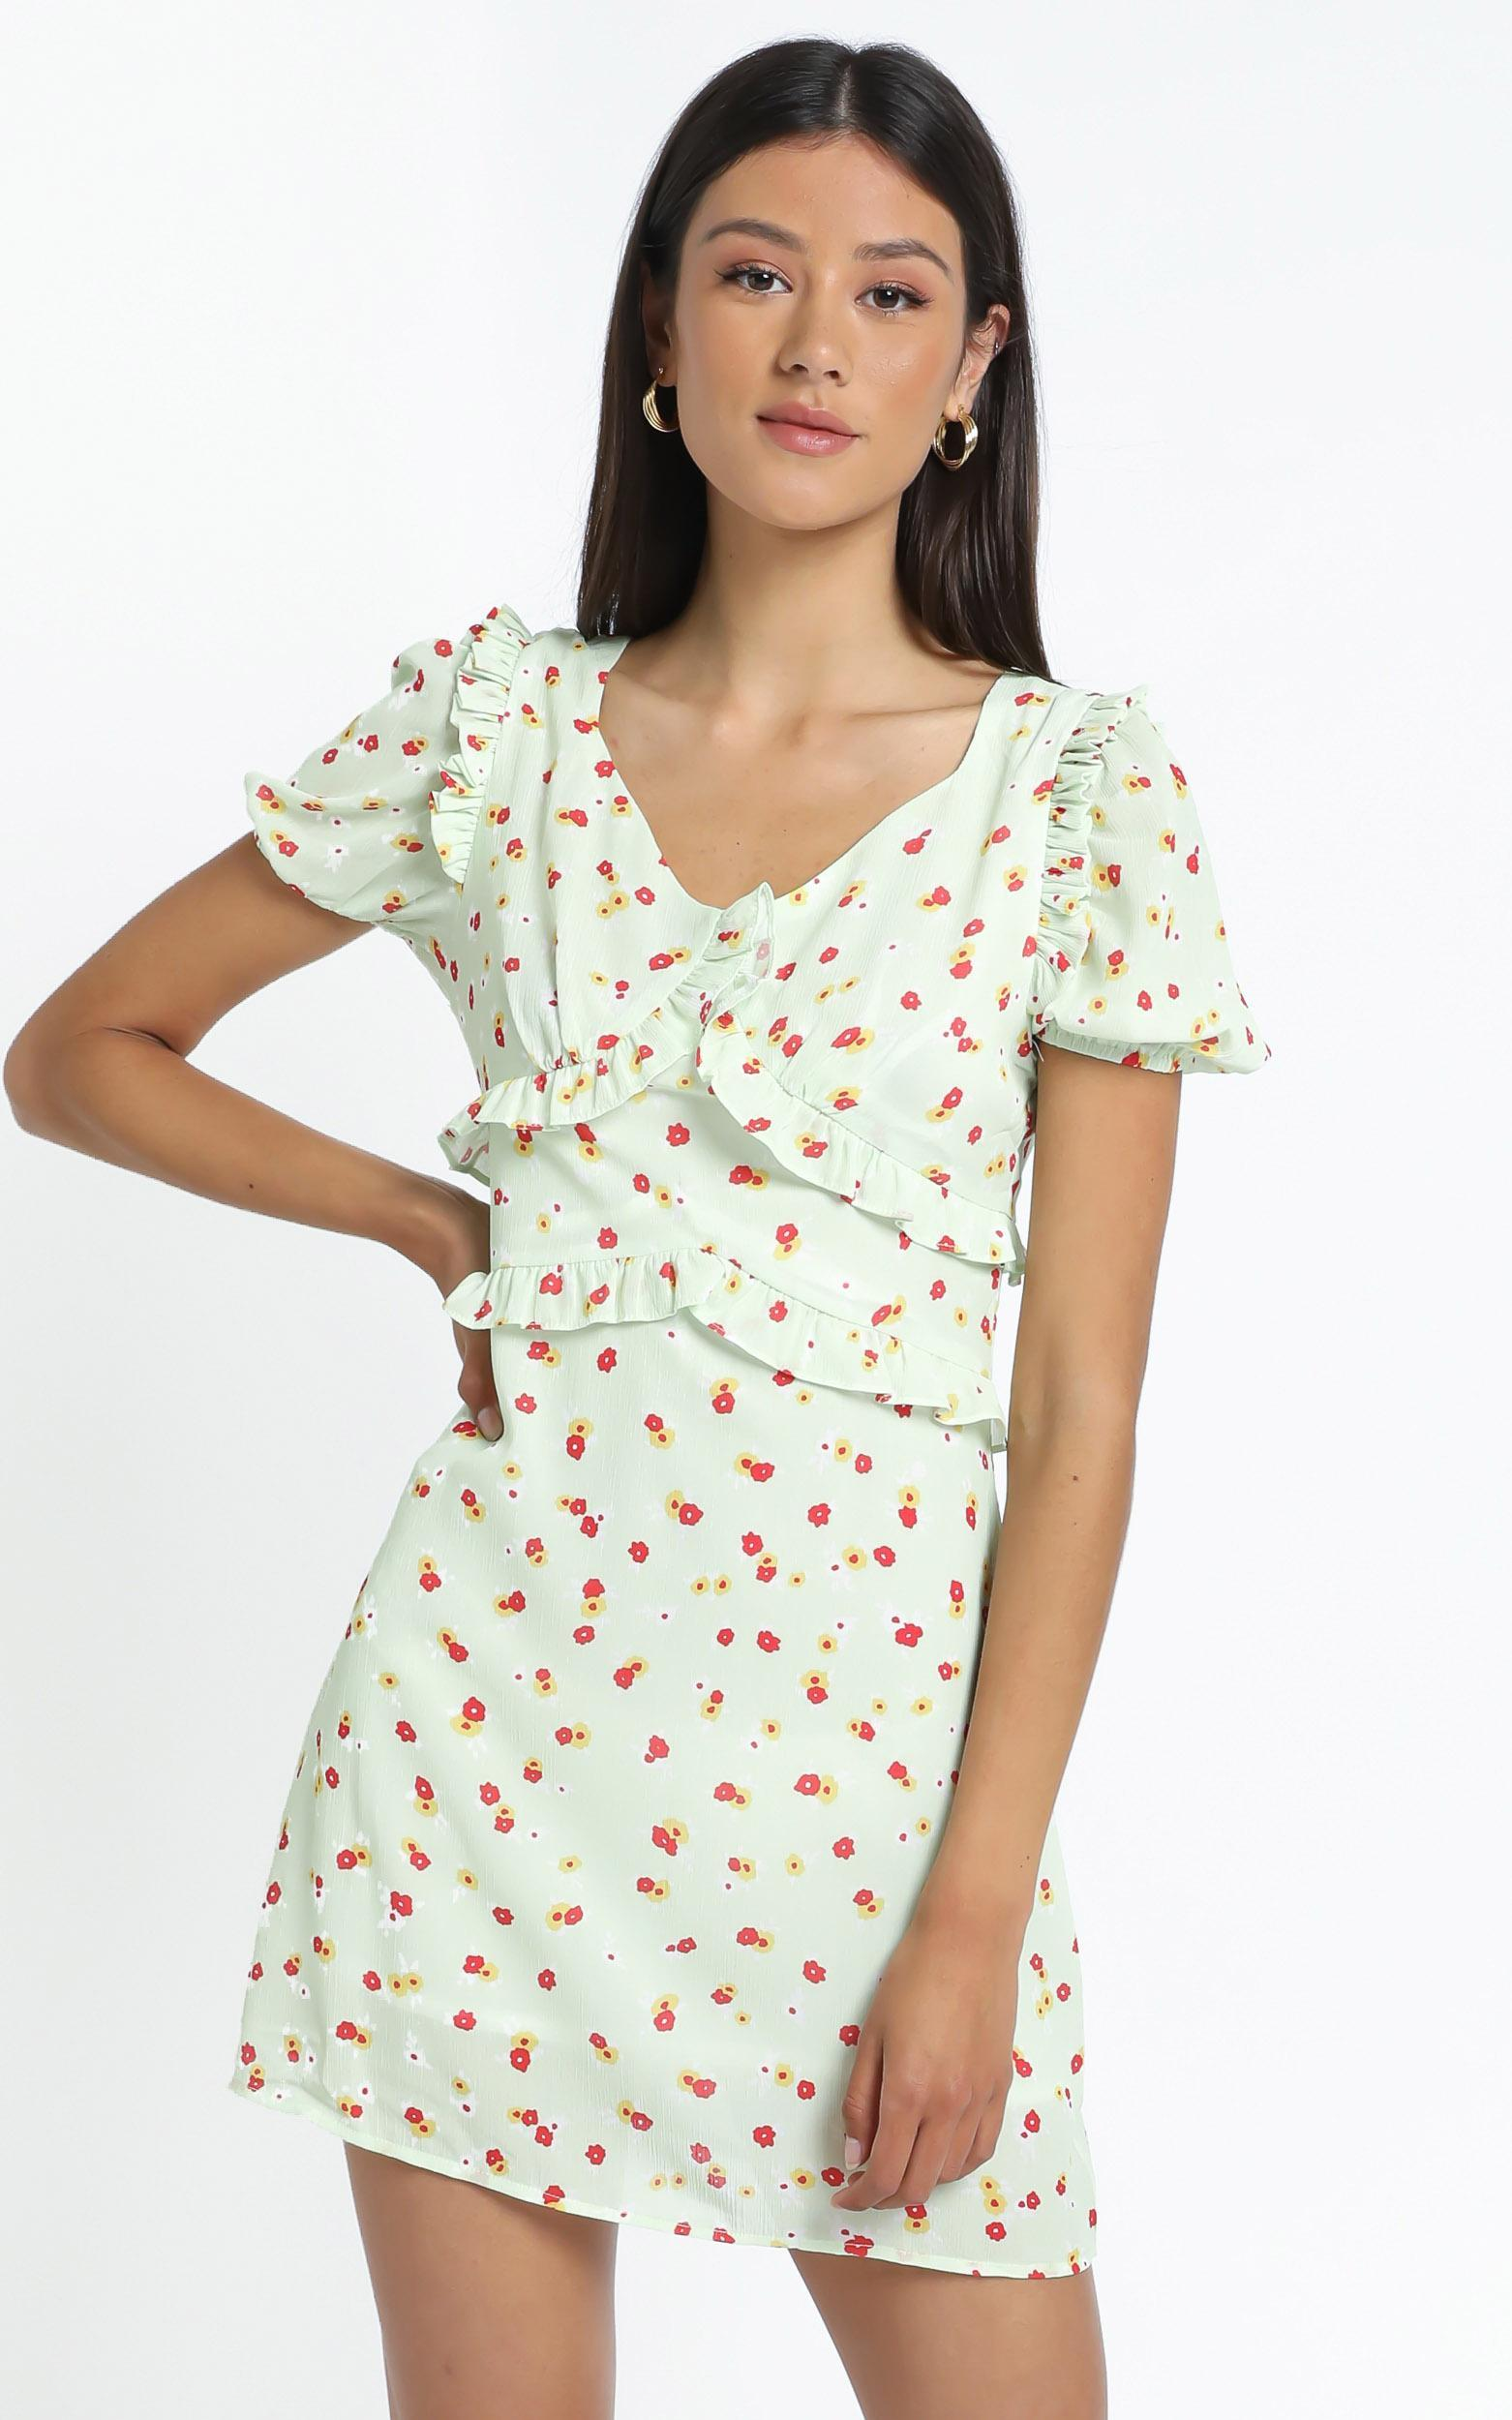 Lacie Dress in Green Floral - 12 (L), Green, hi-res image number null